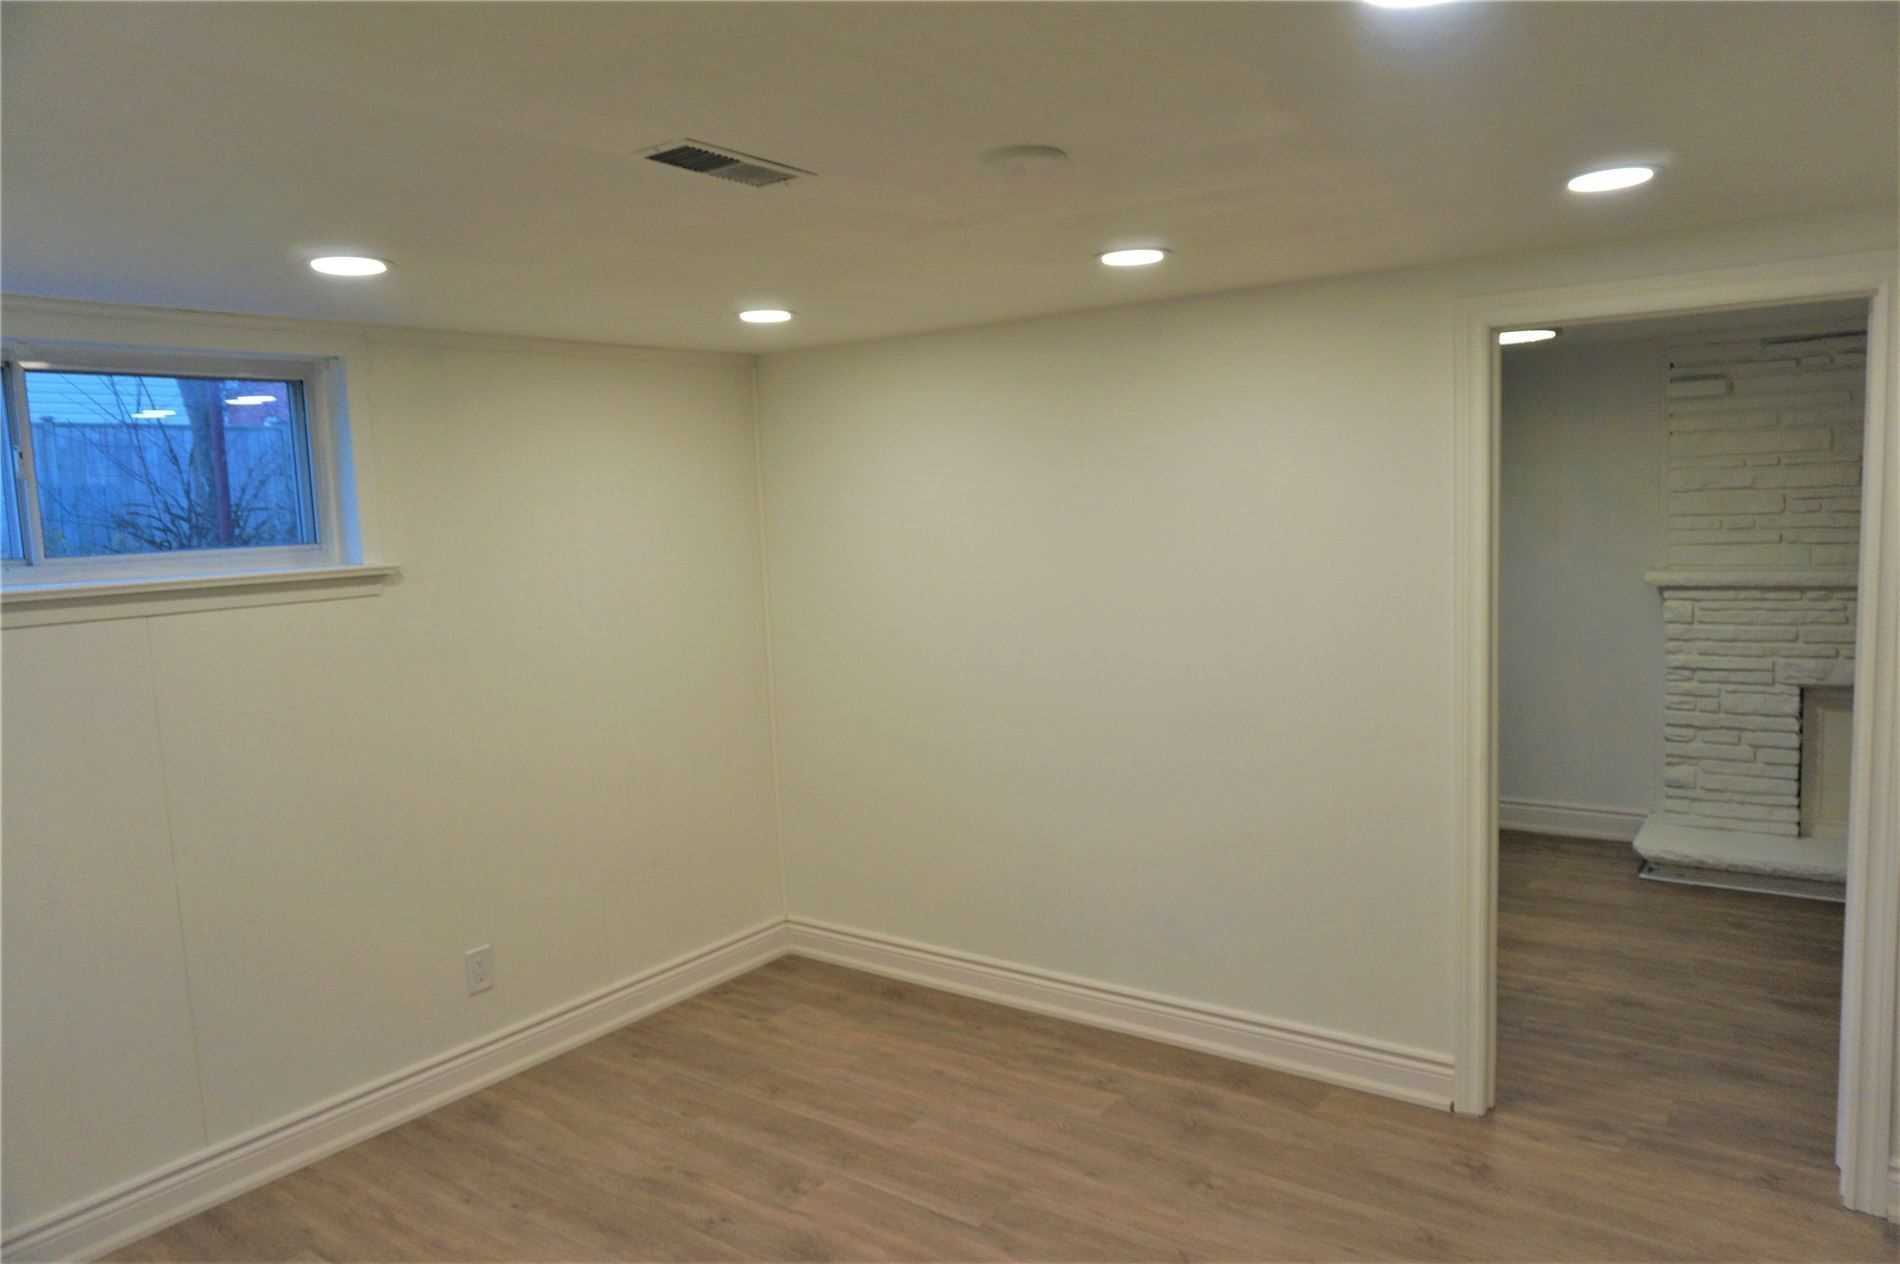 Image 5 of 10 showing inside of 1 Bedroom Detached Bungalow for Lease at 22 Otonabee Ave, Toronto M2M2S3